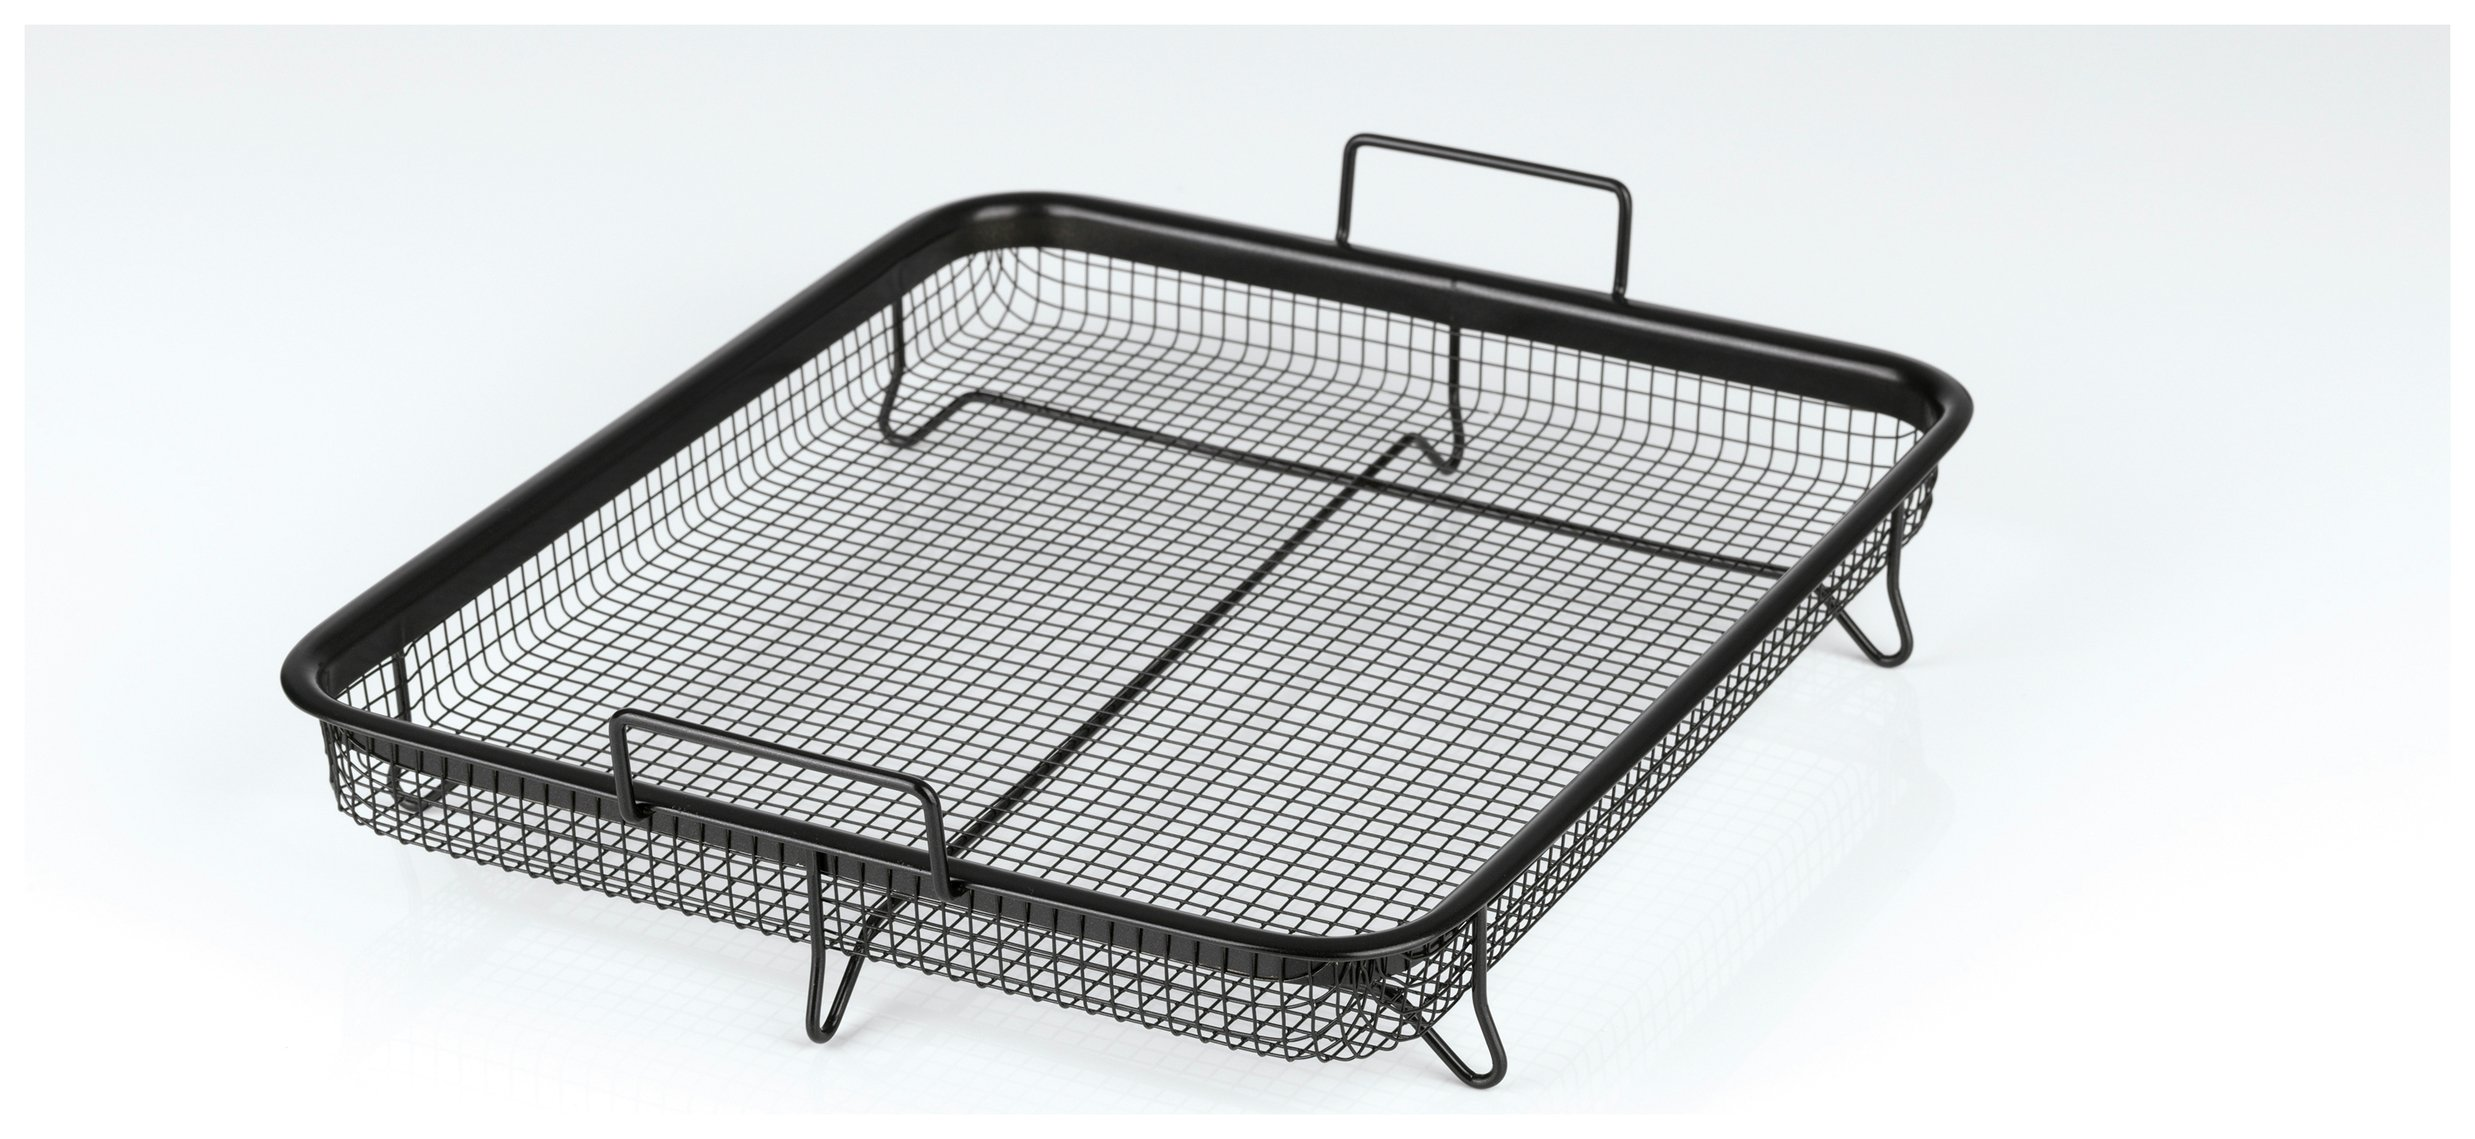 Image of GOURMETmaxx Oven Grill Basket Tray